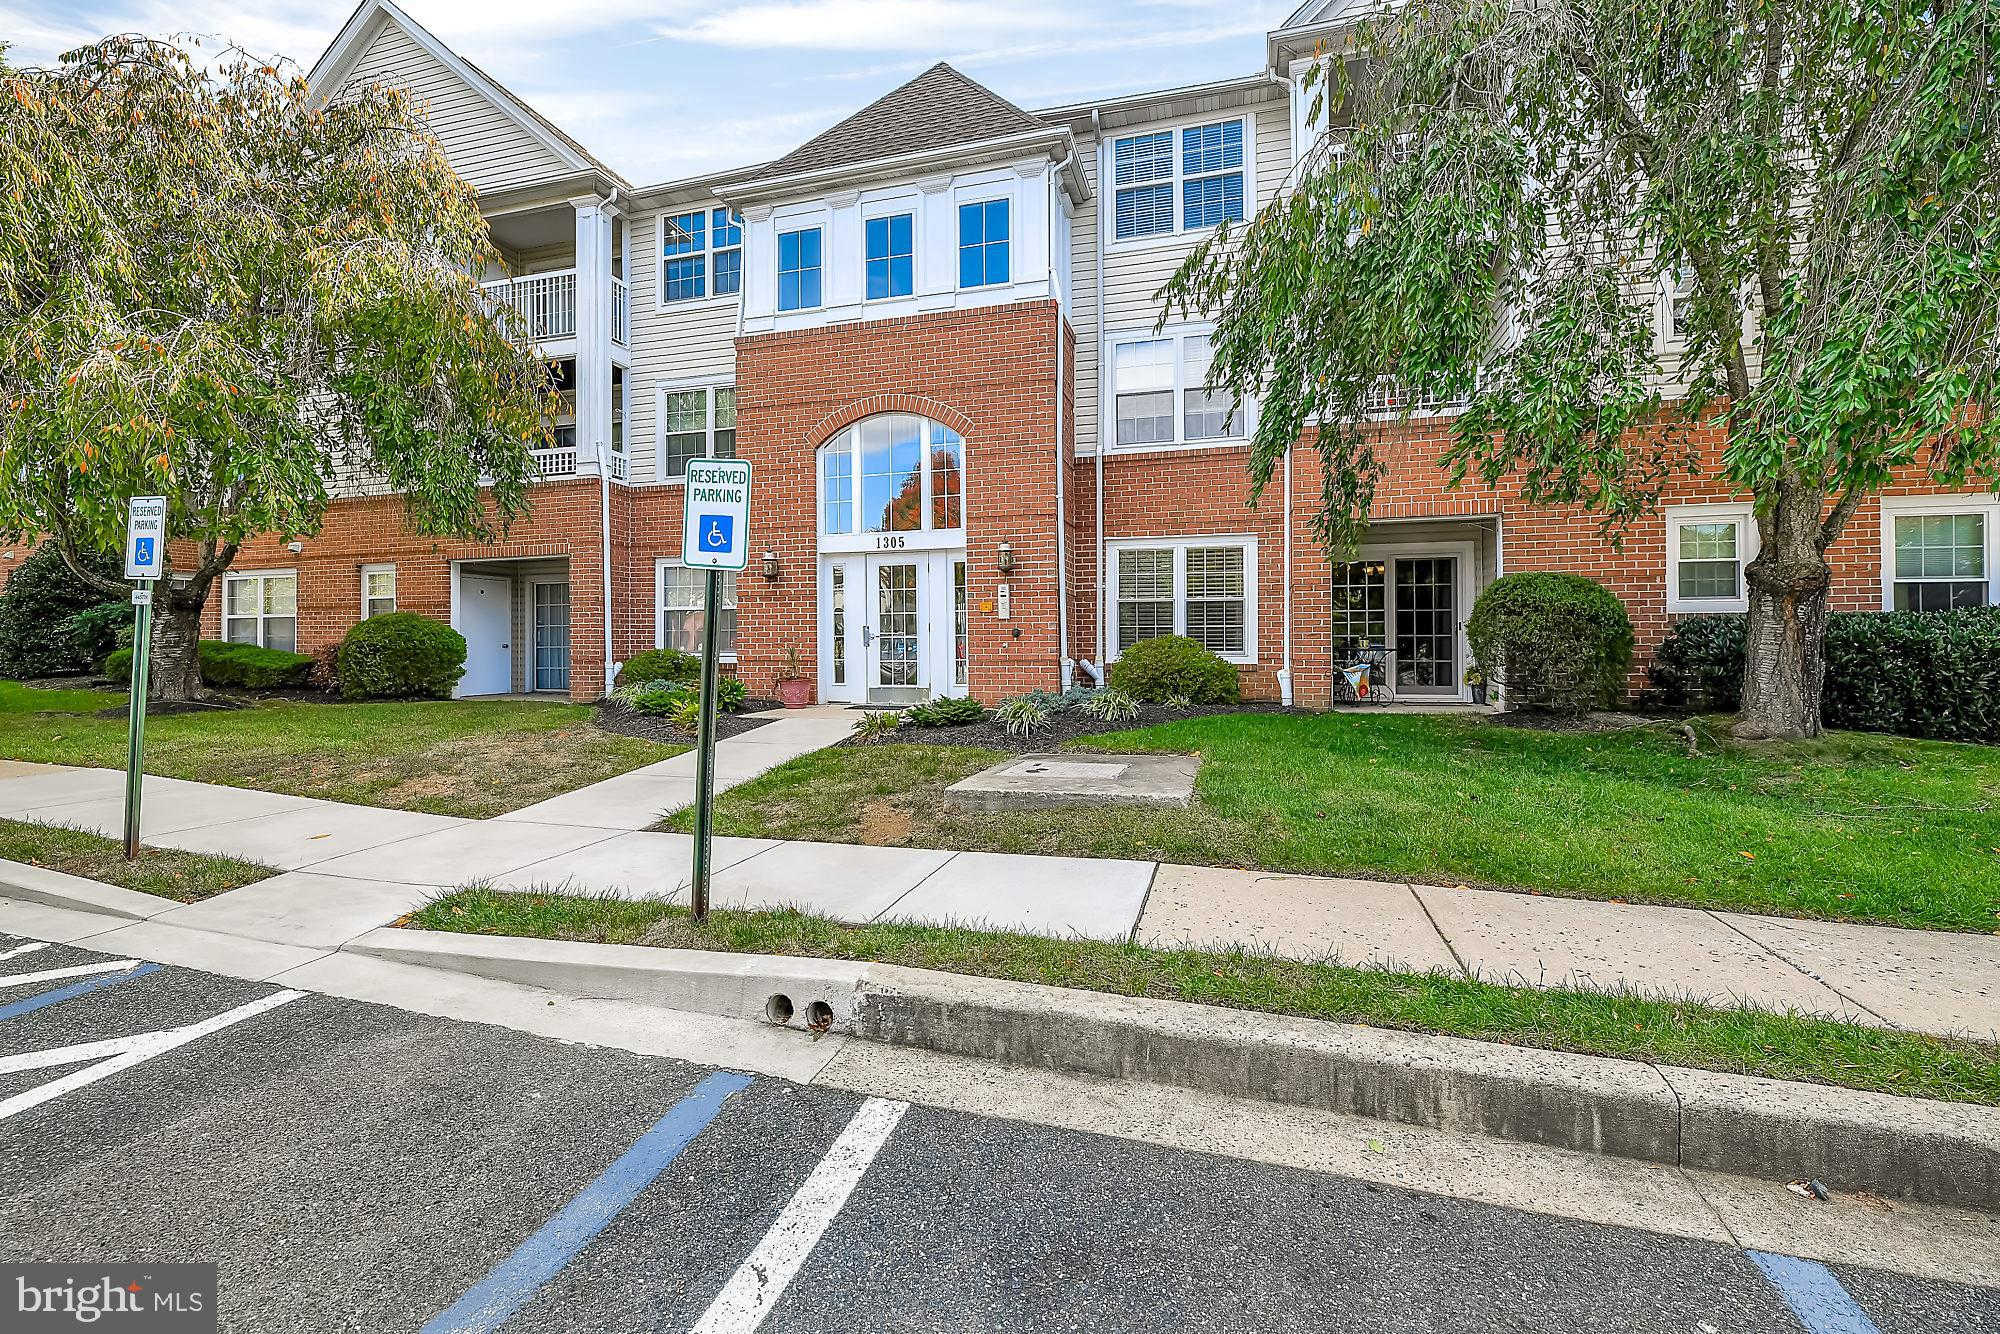 Another Property Sold - 1305 Sheridan Place #70, Bel Air, MD 21015